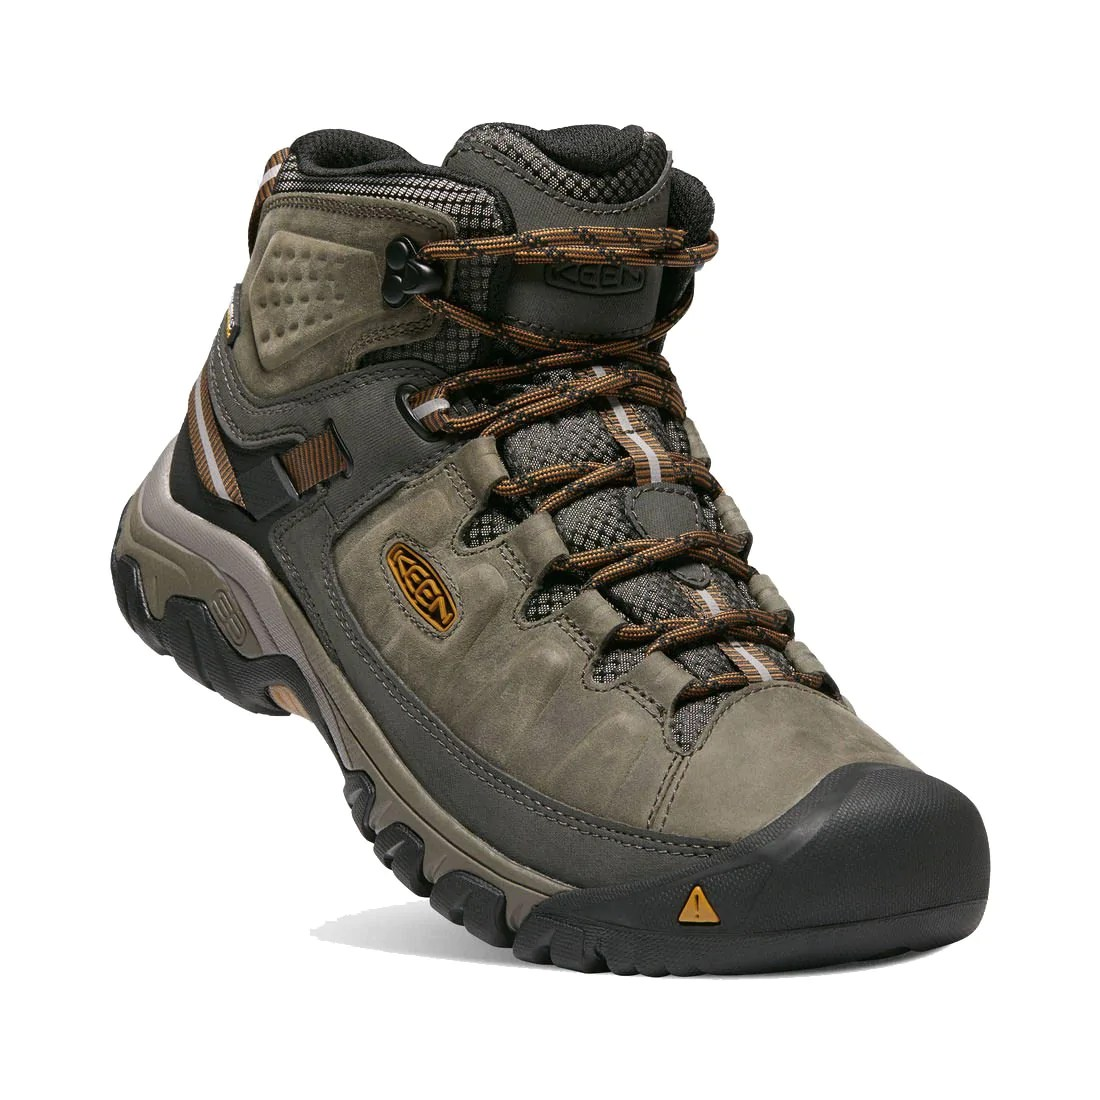 Keen Shoes Zero Drop